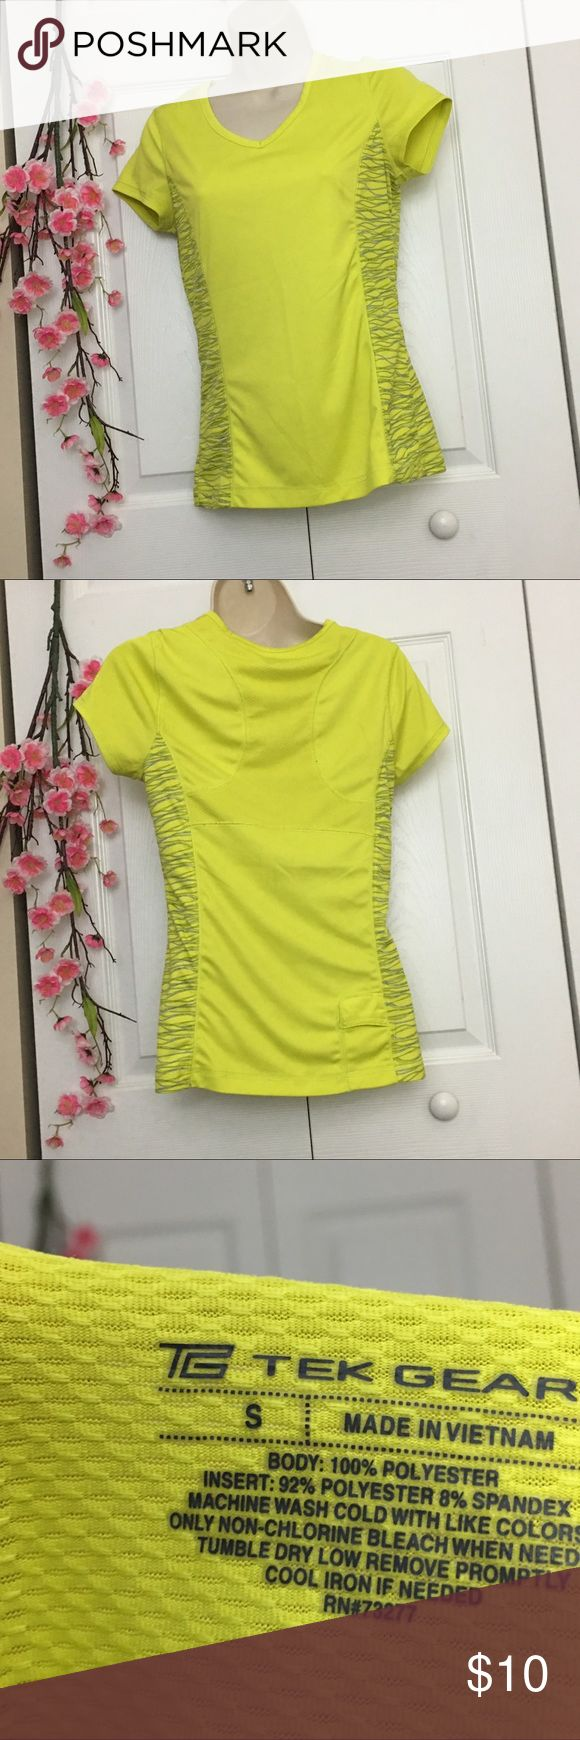 Trek Gear neon yellow short sleeve workout top Great condition. No marks or stains. Add three more items to your bundle & make an offer for 30% off the original price! Don't know how to make an offer? Just ask! tek gear Tops Tees - Short Sleeve